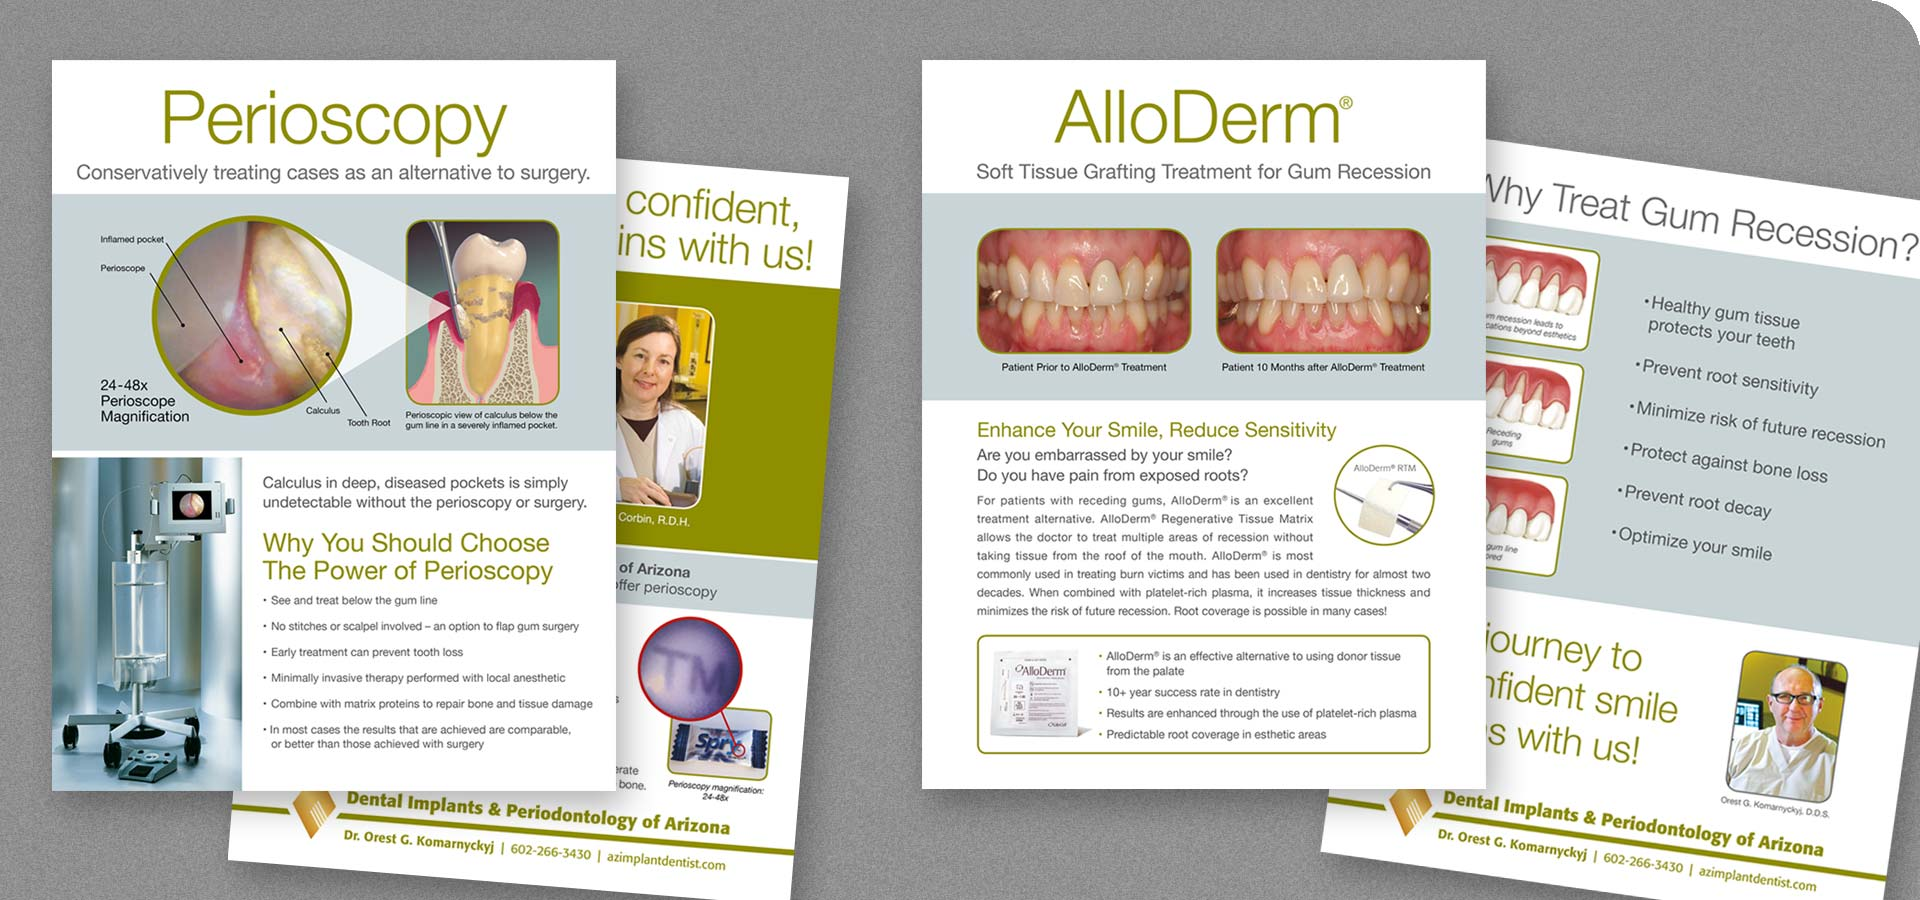 Dental Implants & Periodontology of Arizona Procedure Sheets